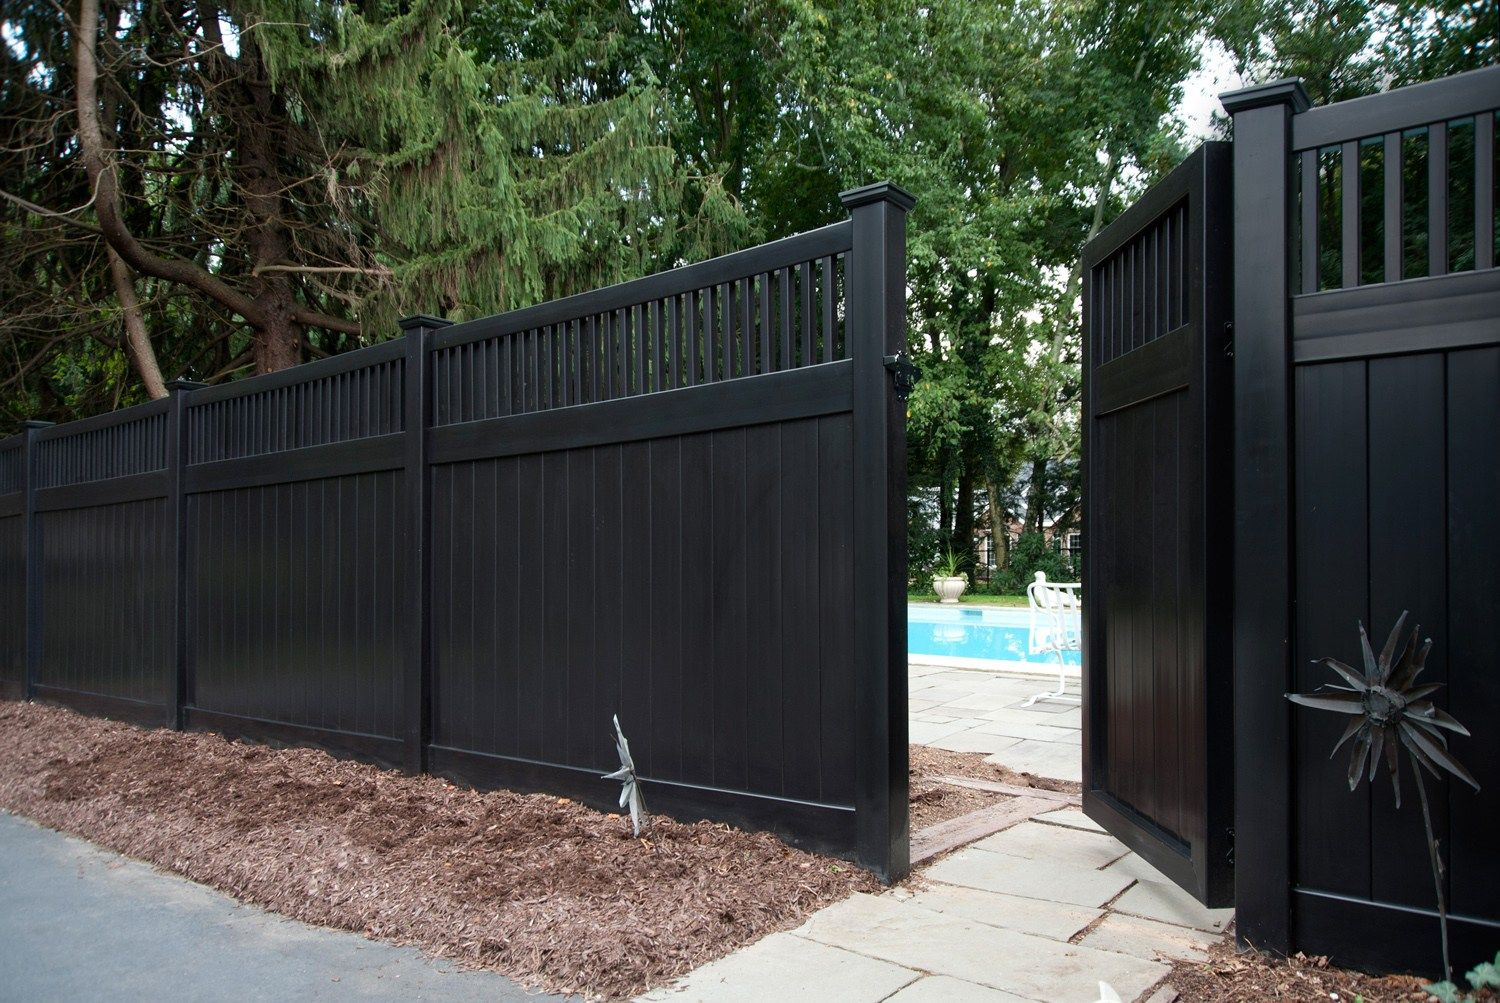 Images Of Illusions Pvc Vinyl Wood Grain And Color Fence Fence Design Vinyl Fence Vinyl Fence Panels